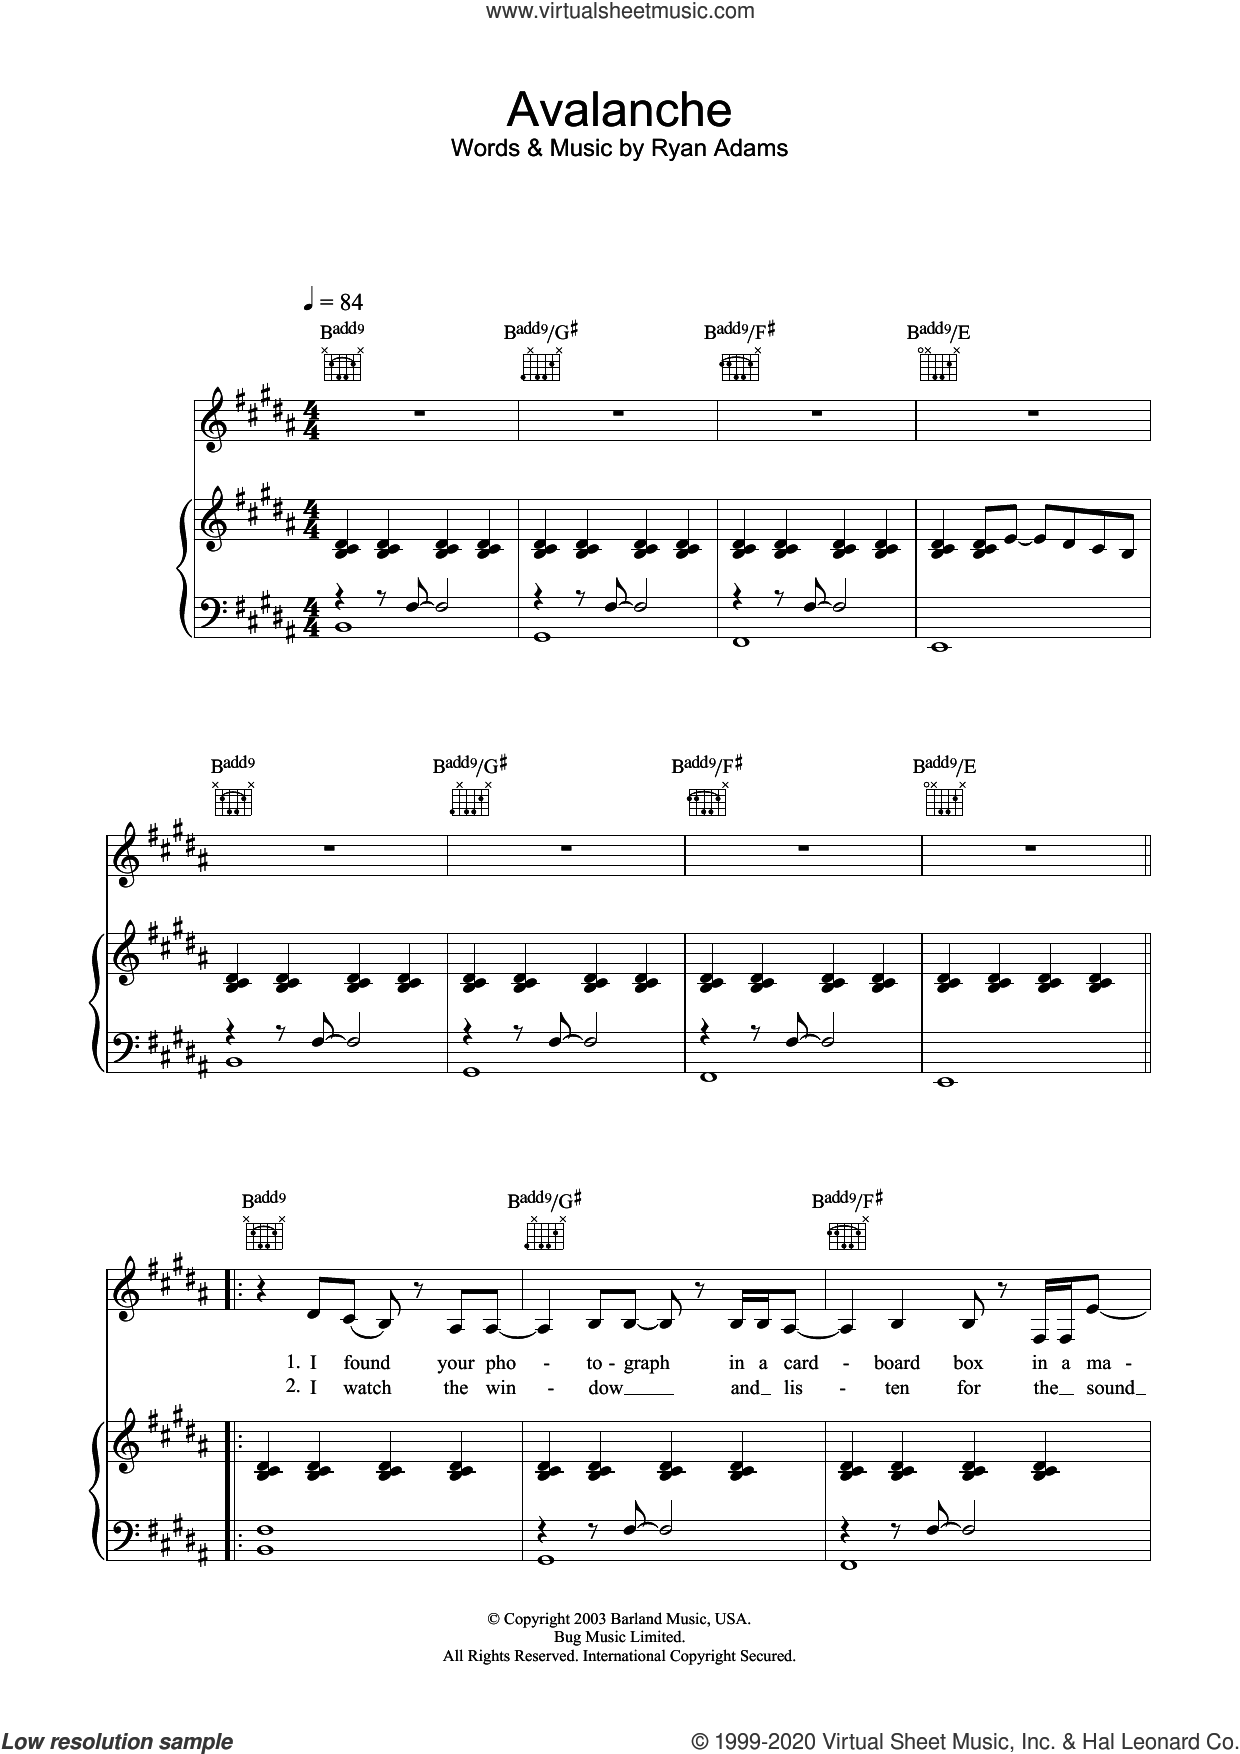 Avalanche sheet music for voice, piano or guitar by Ryan Adams, intermediate skill level